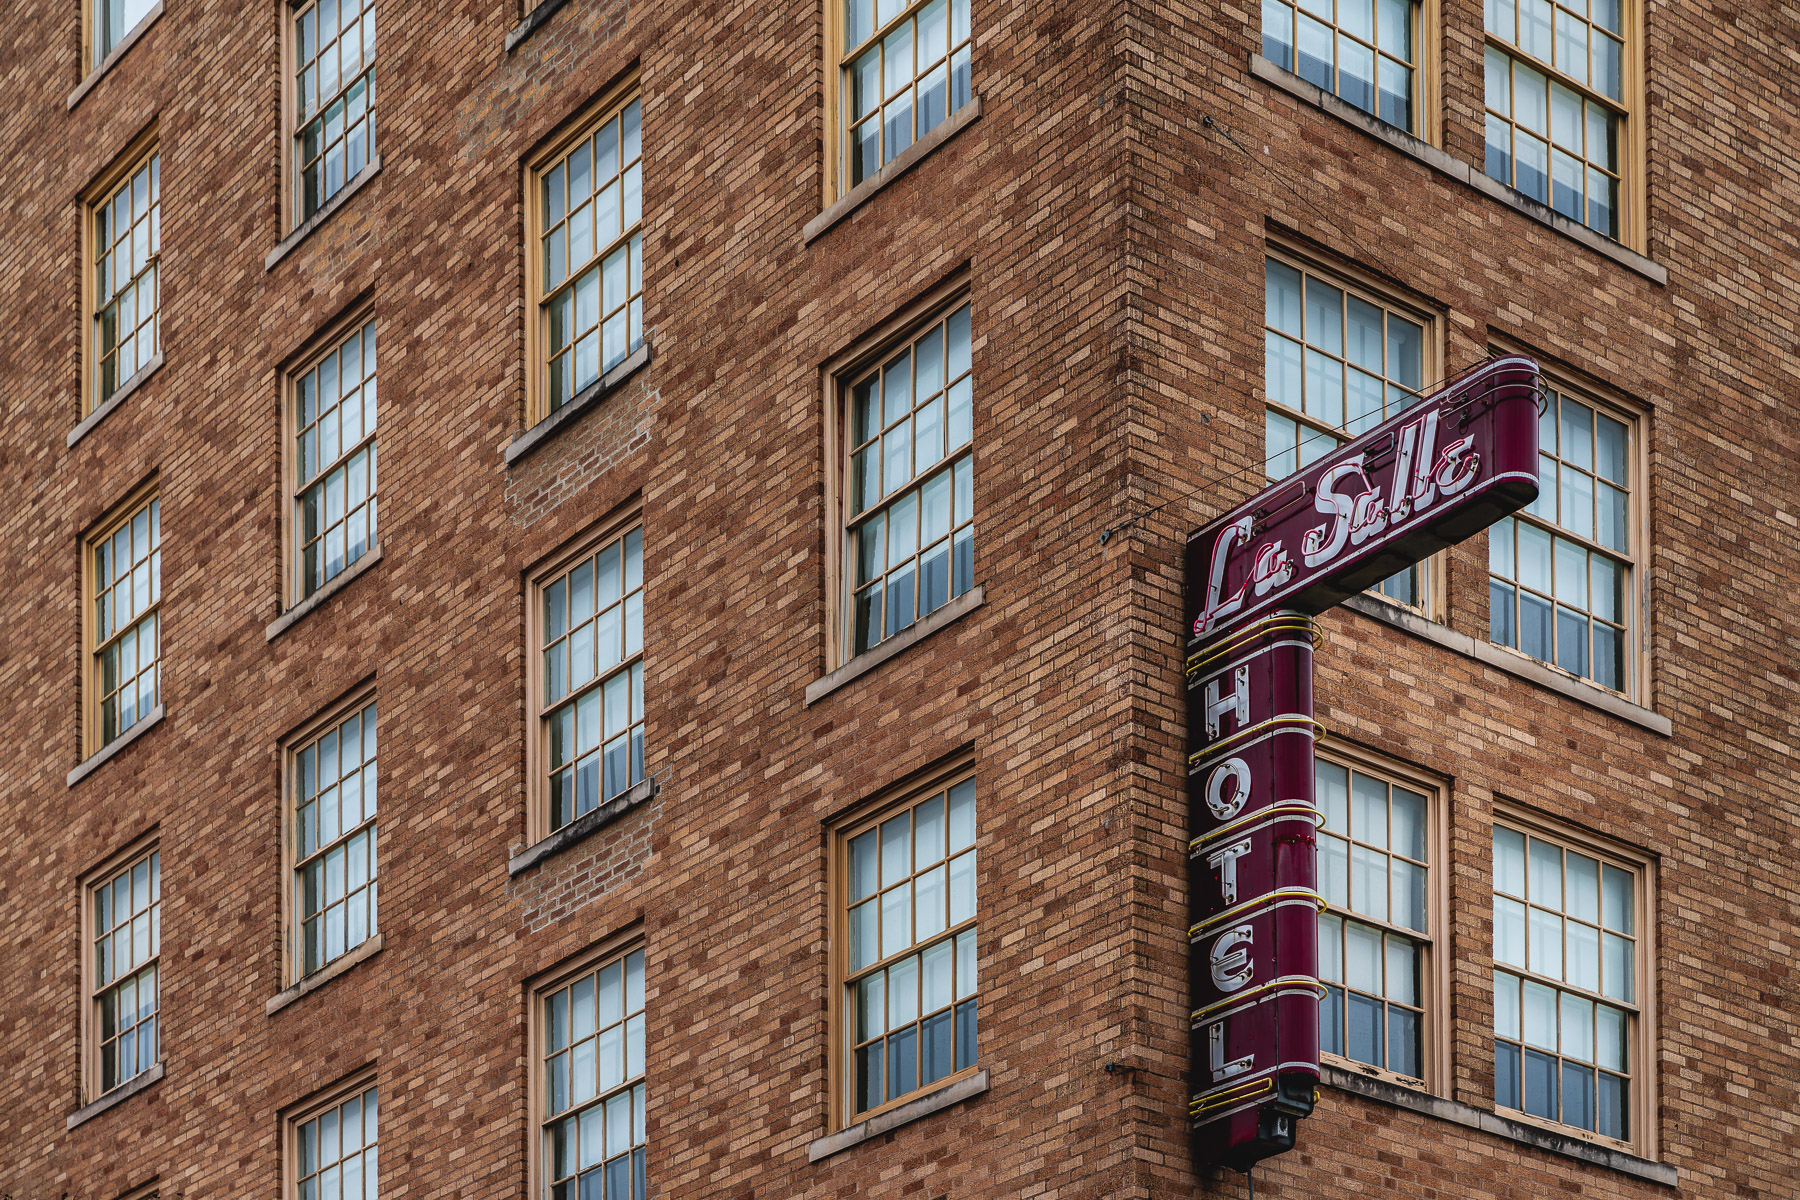 Architectural detail of the LaSalle Hotel in Downtown Bryan, Texas.